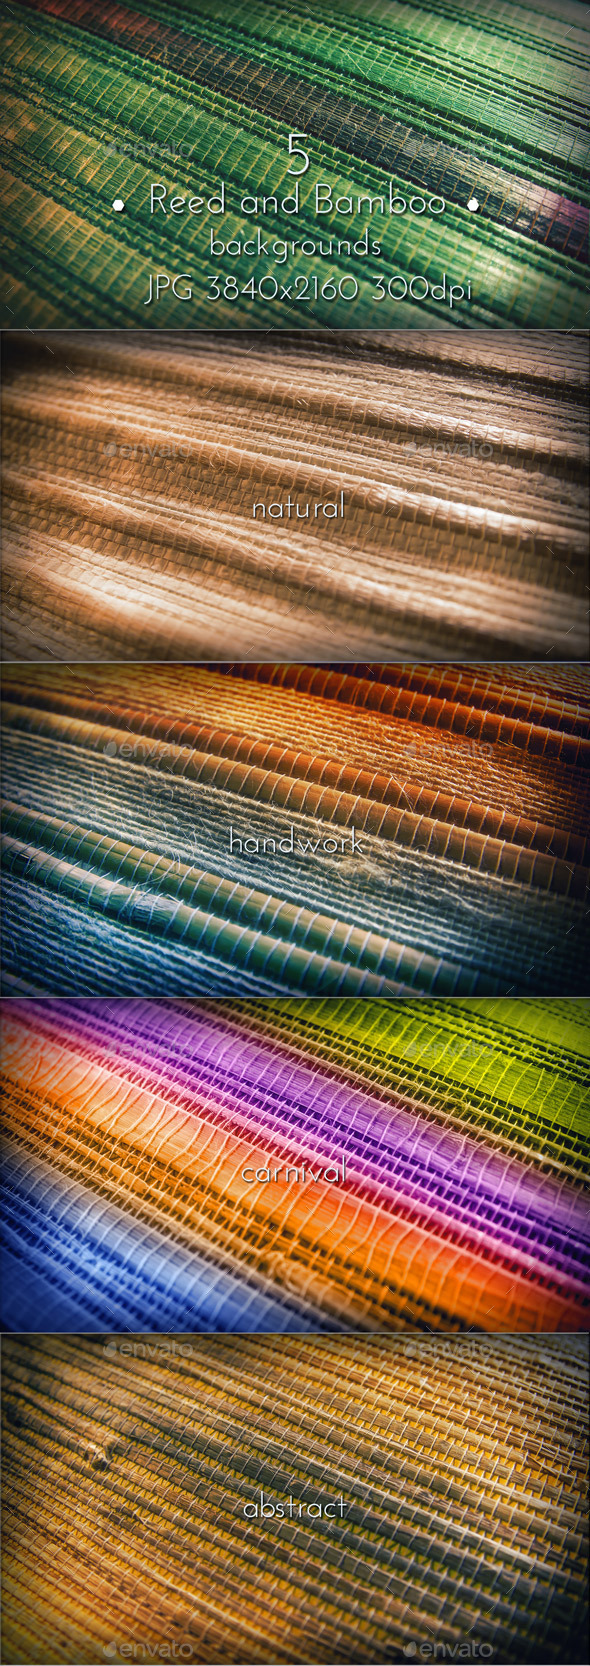 Bamboo and Reed Natural Collection - Nature Backgrounds